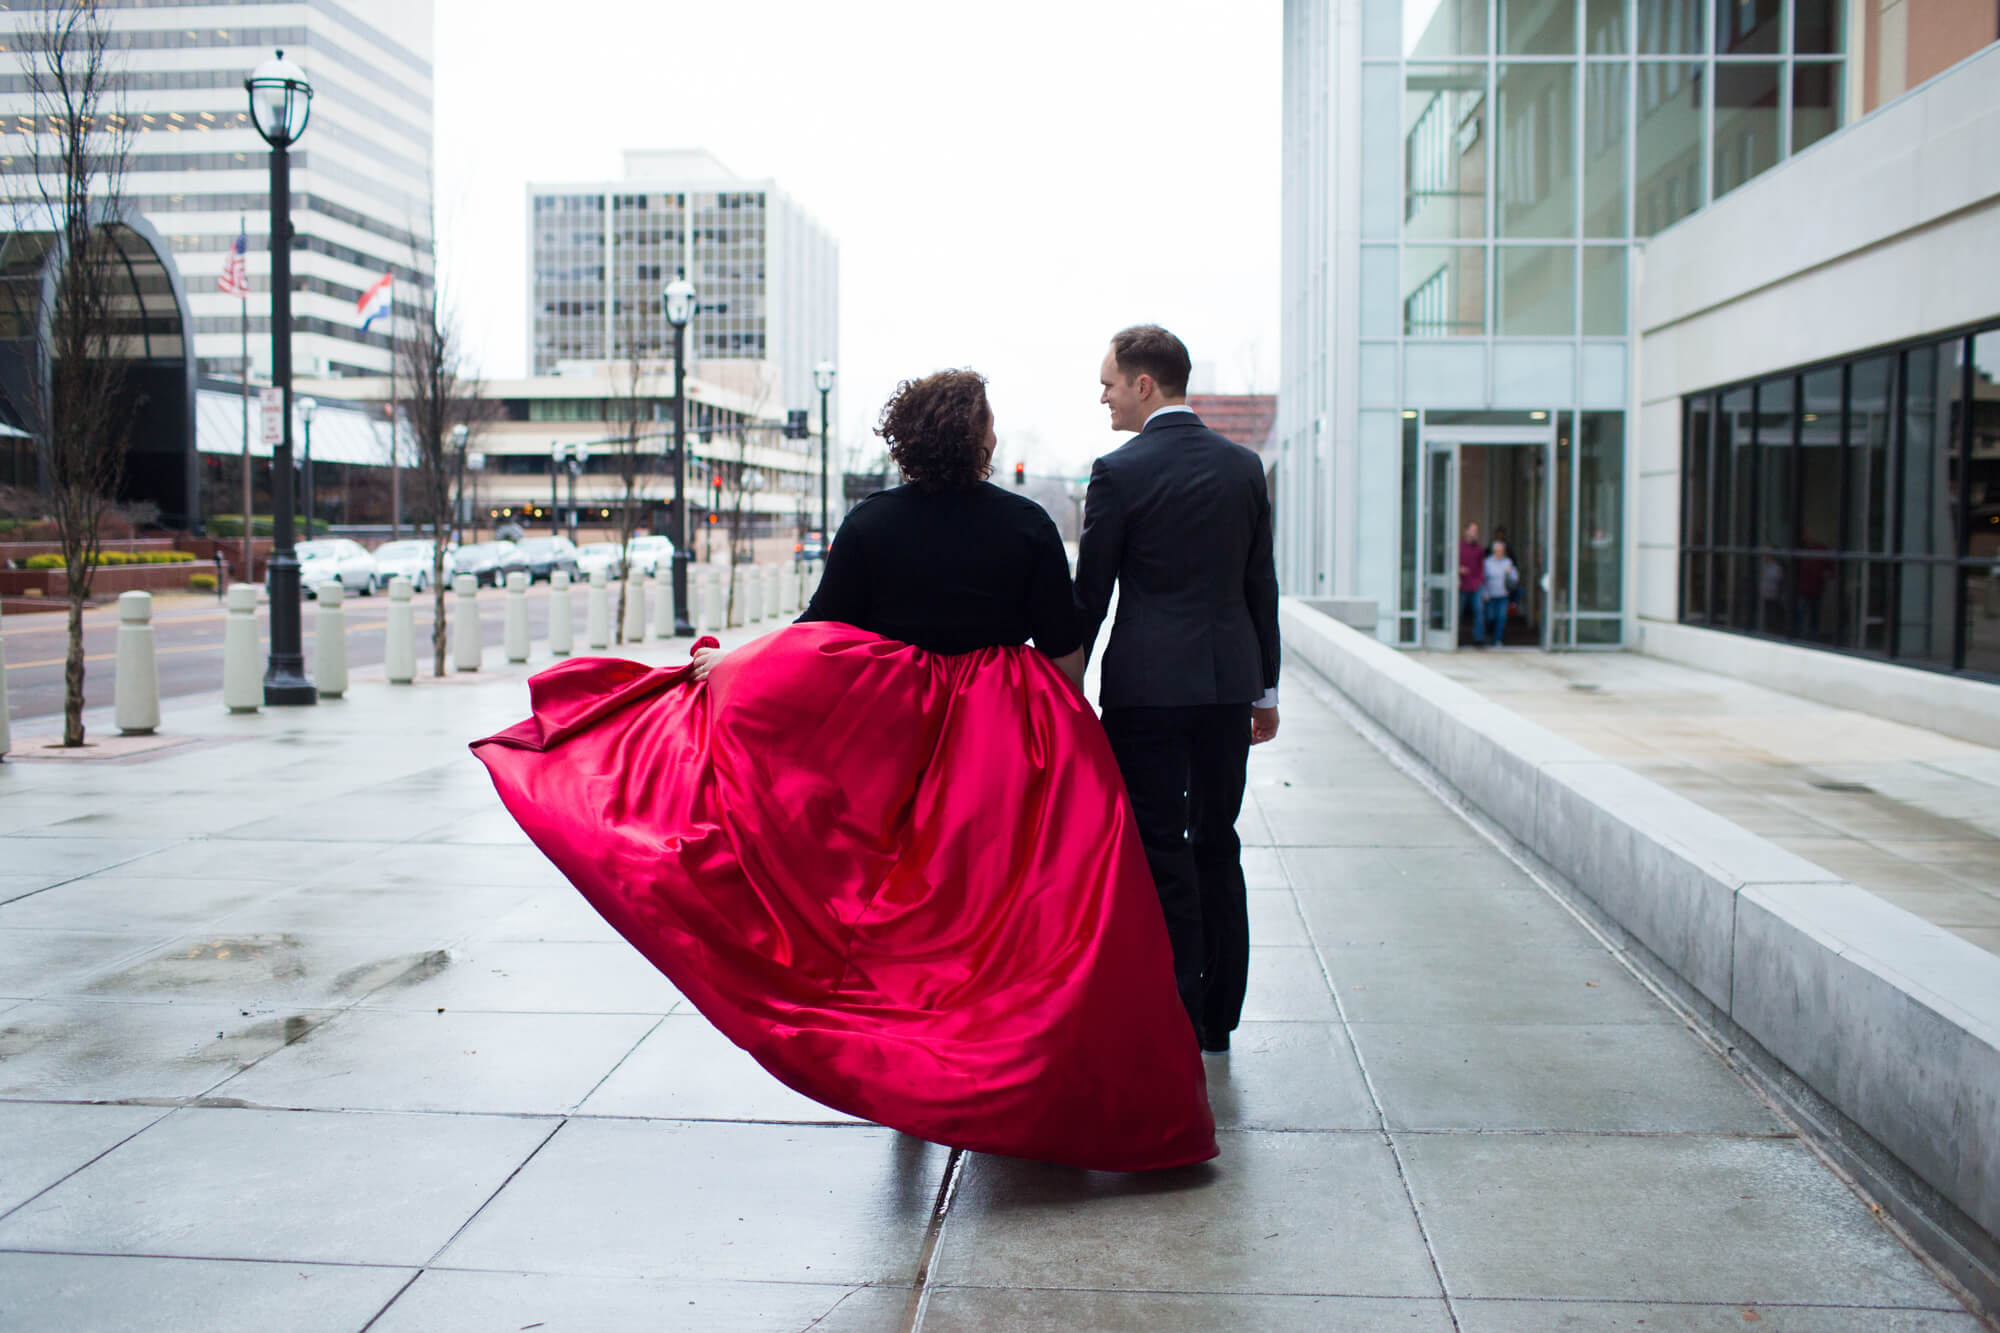 57-red-wedding-dress-courthouse-wedding-st-louis.jpg